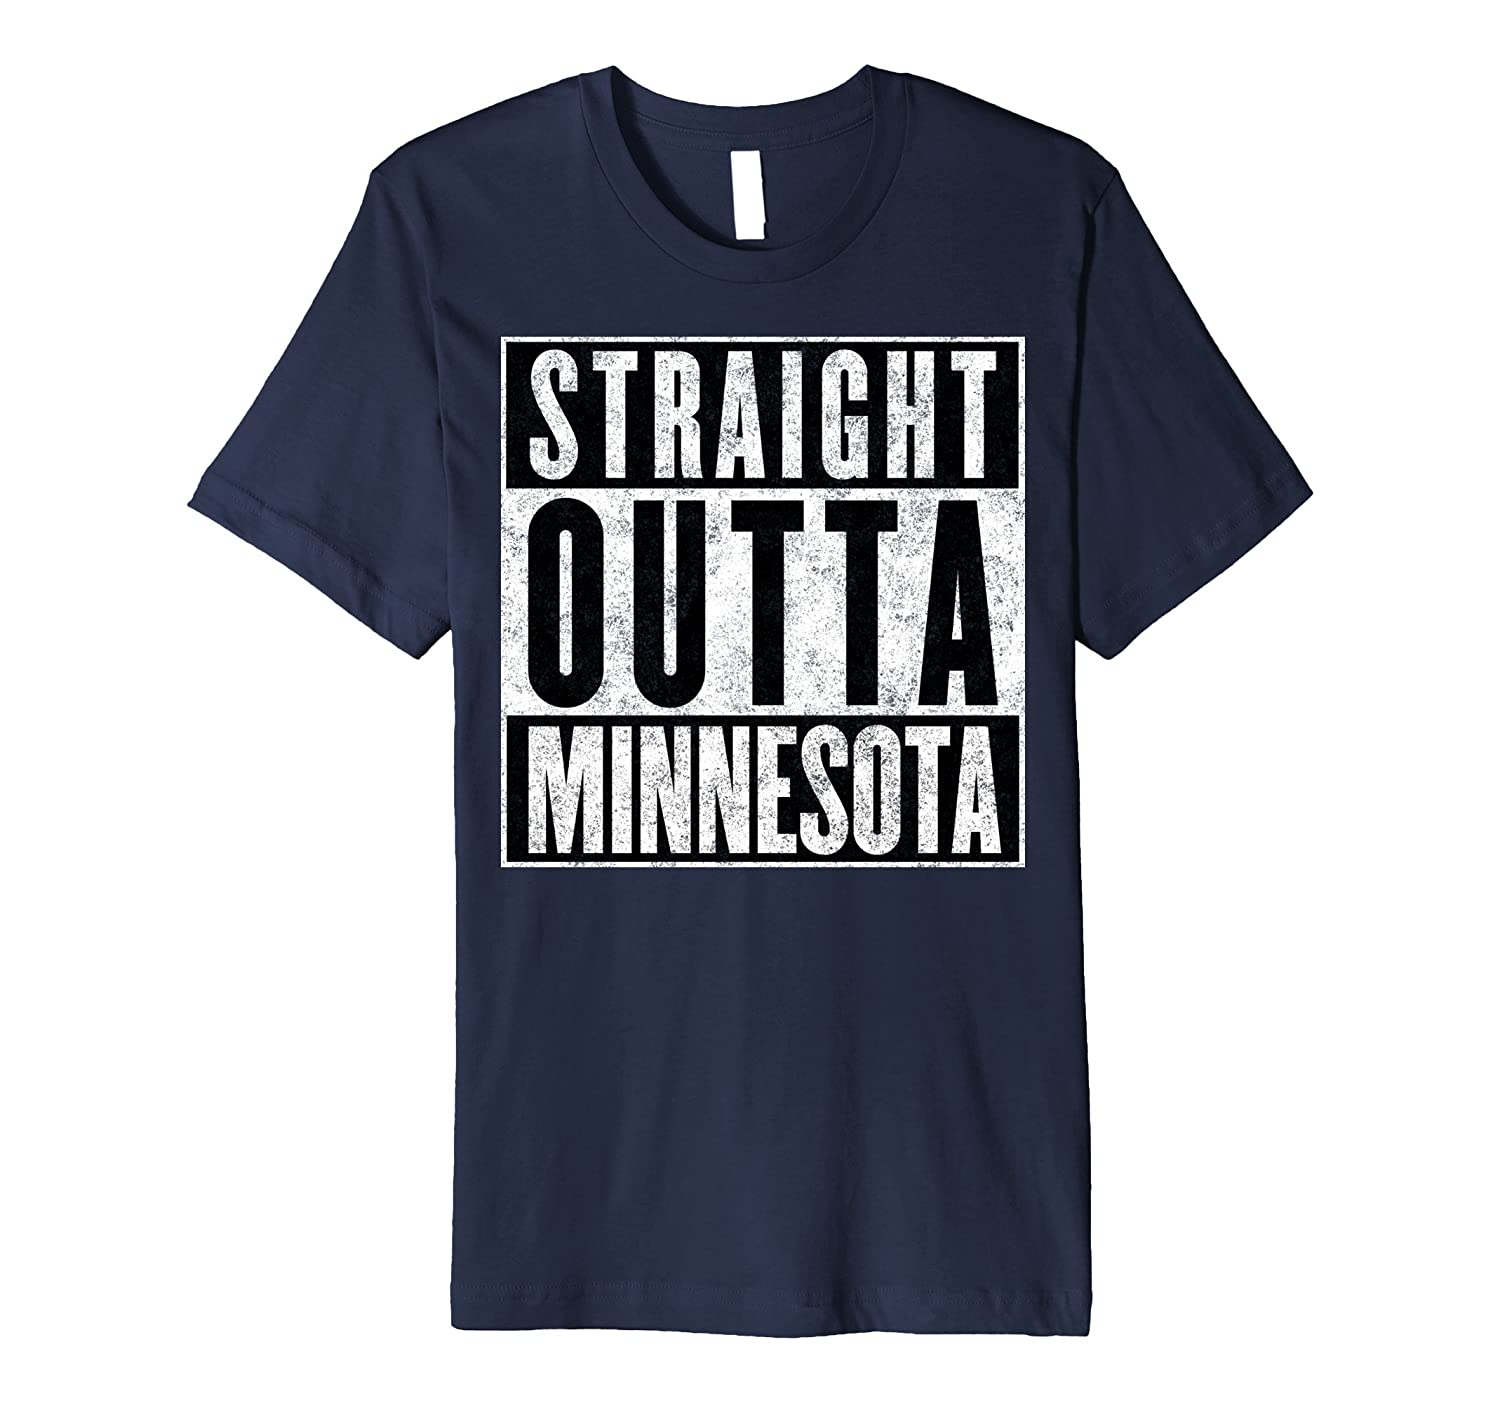 50nifty The State Rep Collection - Minnesota T-shirt-TD